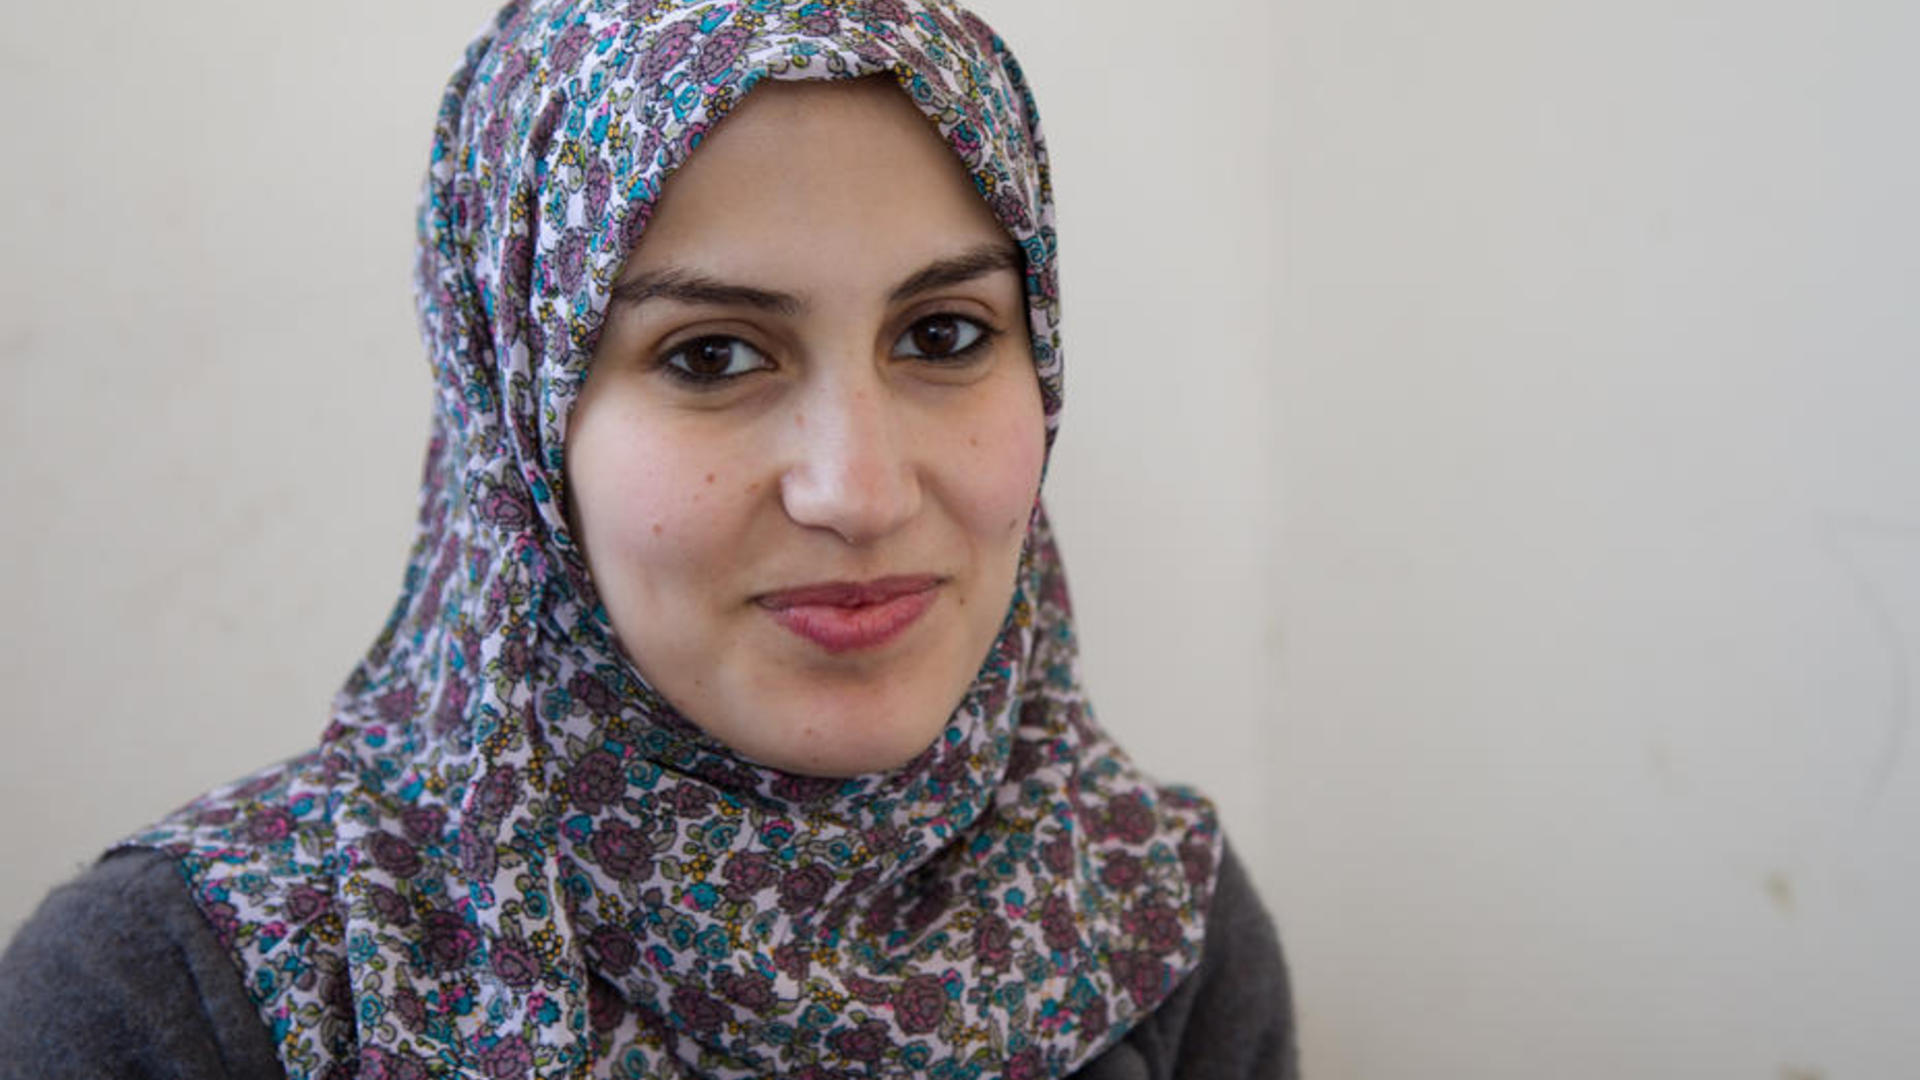 Samah, 23, was eager to start a new life with her family.